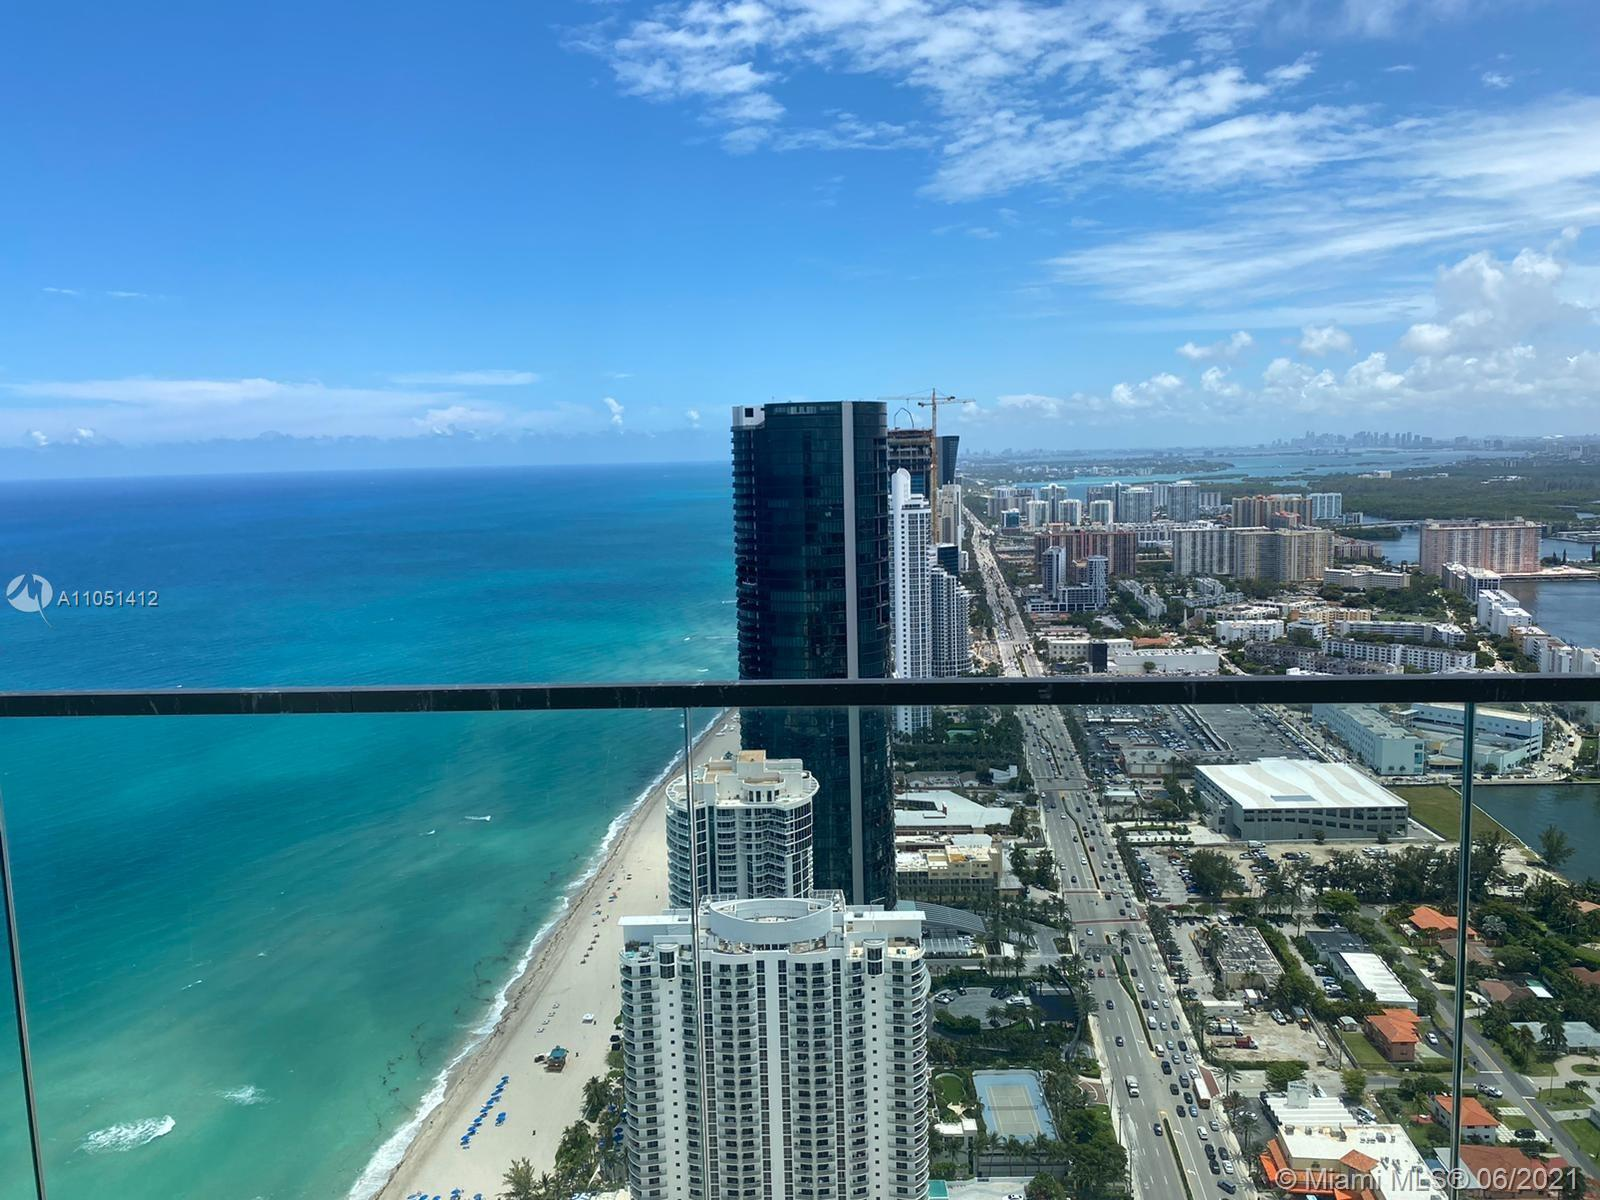 COMPLETELY BRAND NEW 2 BED + 2 BATH LUXURY CORNER UNIT WITH WEST FACING AMAZING VIEWS OF INTRACOASTAL, DOWNTOWN MIAMI, AND OCEAN VIEWS FROM OVERSIZED WRAP AROUND BALCONY OF 1,123 SQ FT.   INTERIORS IS 1572 SQ FT. LOFT CEILINGS, SEMIPRIVATE FOYER, SUBZERO FRIDGE, AND WOLF APPLIANCES, OUTDOOR ELECTRIC BBQ WITH REFRIGERATOR, NEWLY LUXURIOUS AND ELEGANT OCEAN FRONT ARMANI TOWER WITH LOTS OF AMENITIES- BAR, CLUB ROOM, GYM, SPA, CIGAR AND WINE ROOM, KIDS ROOM, THEATER, RESTAURANT,AND FULL RESORT STYLE WITH POOL AND BEACH SERVICE. EASY TO SHOW!